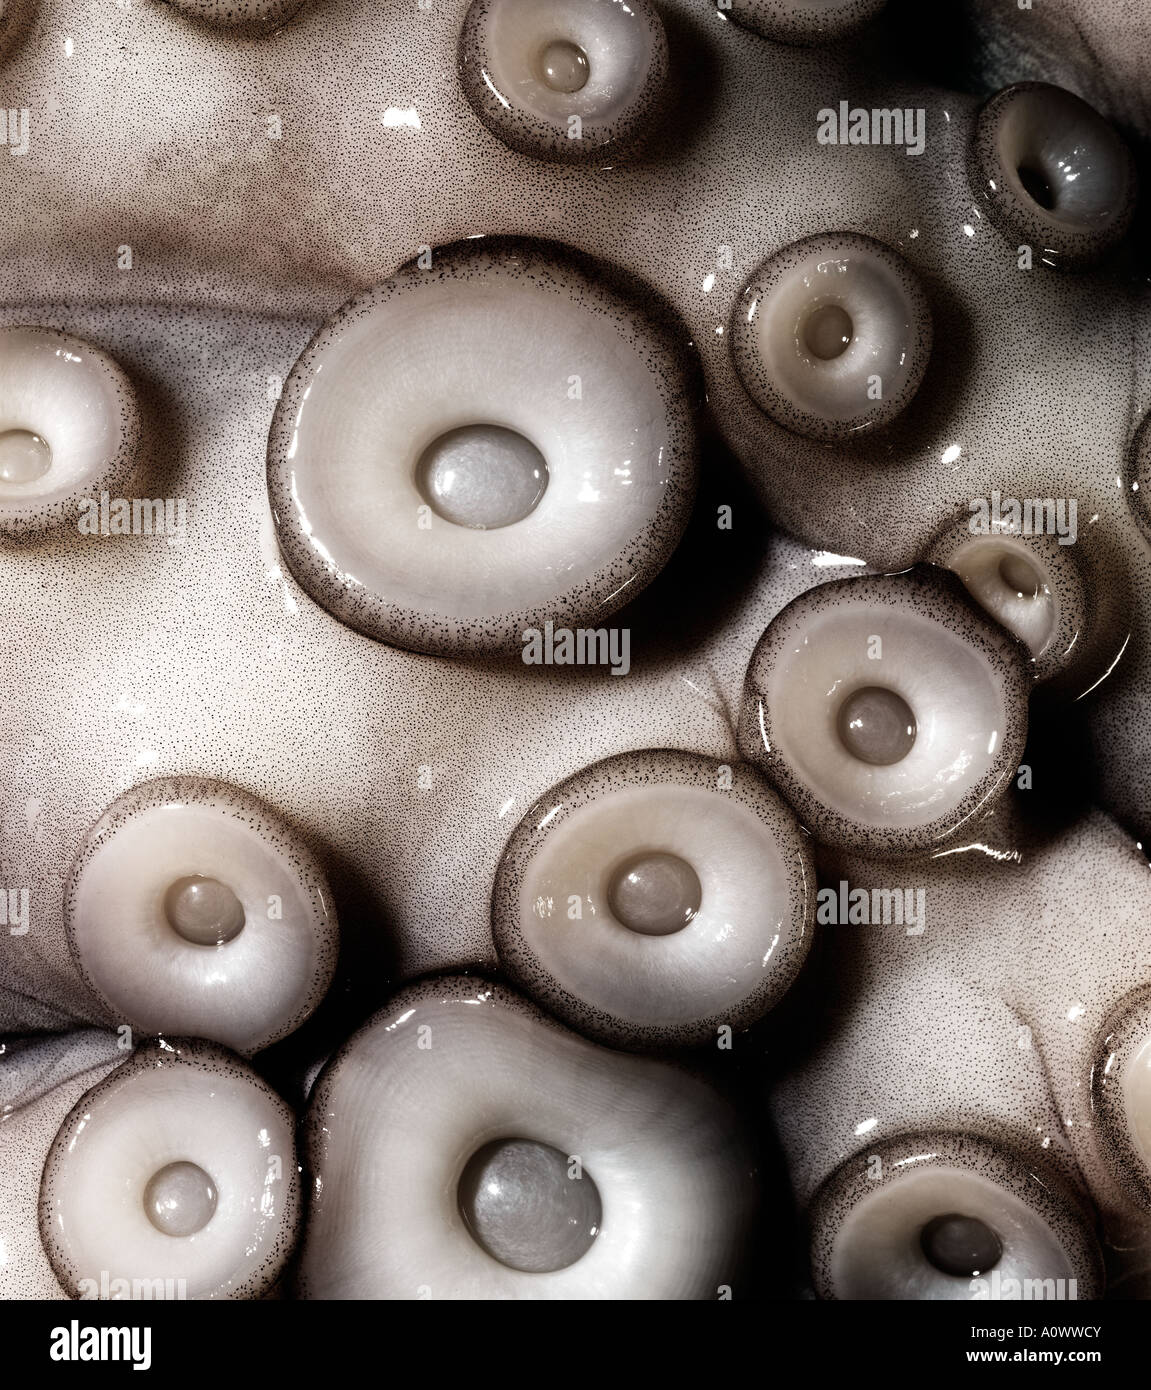 Le poulpe cuit pas close up de drageons Octopus Banque D'Images